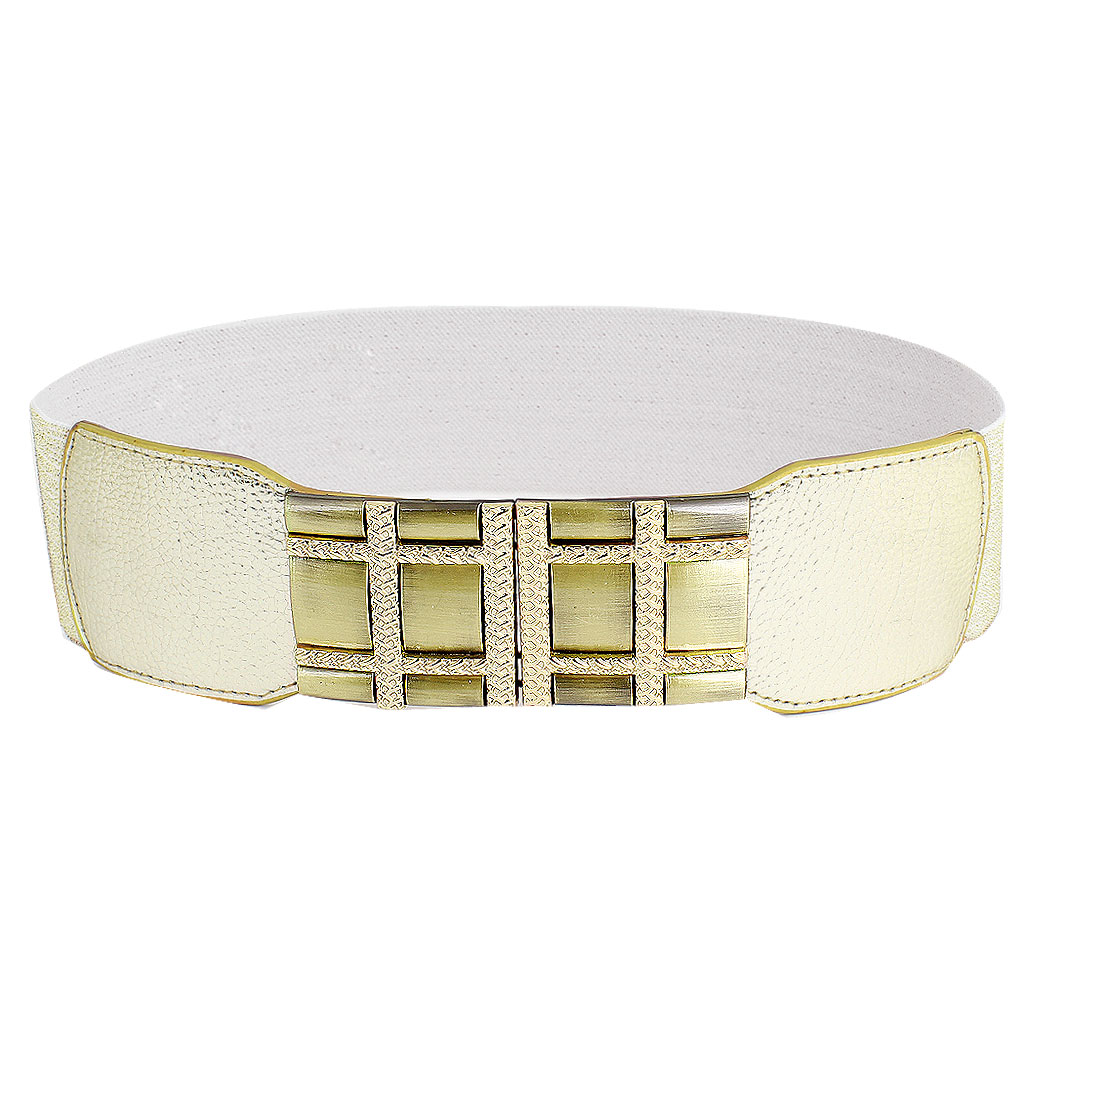 Lady 6cm Width Interlocking Buckle Gold Tone Elastic Cinch Belt Band